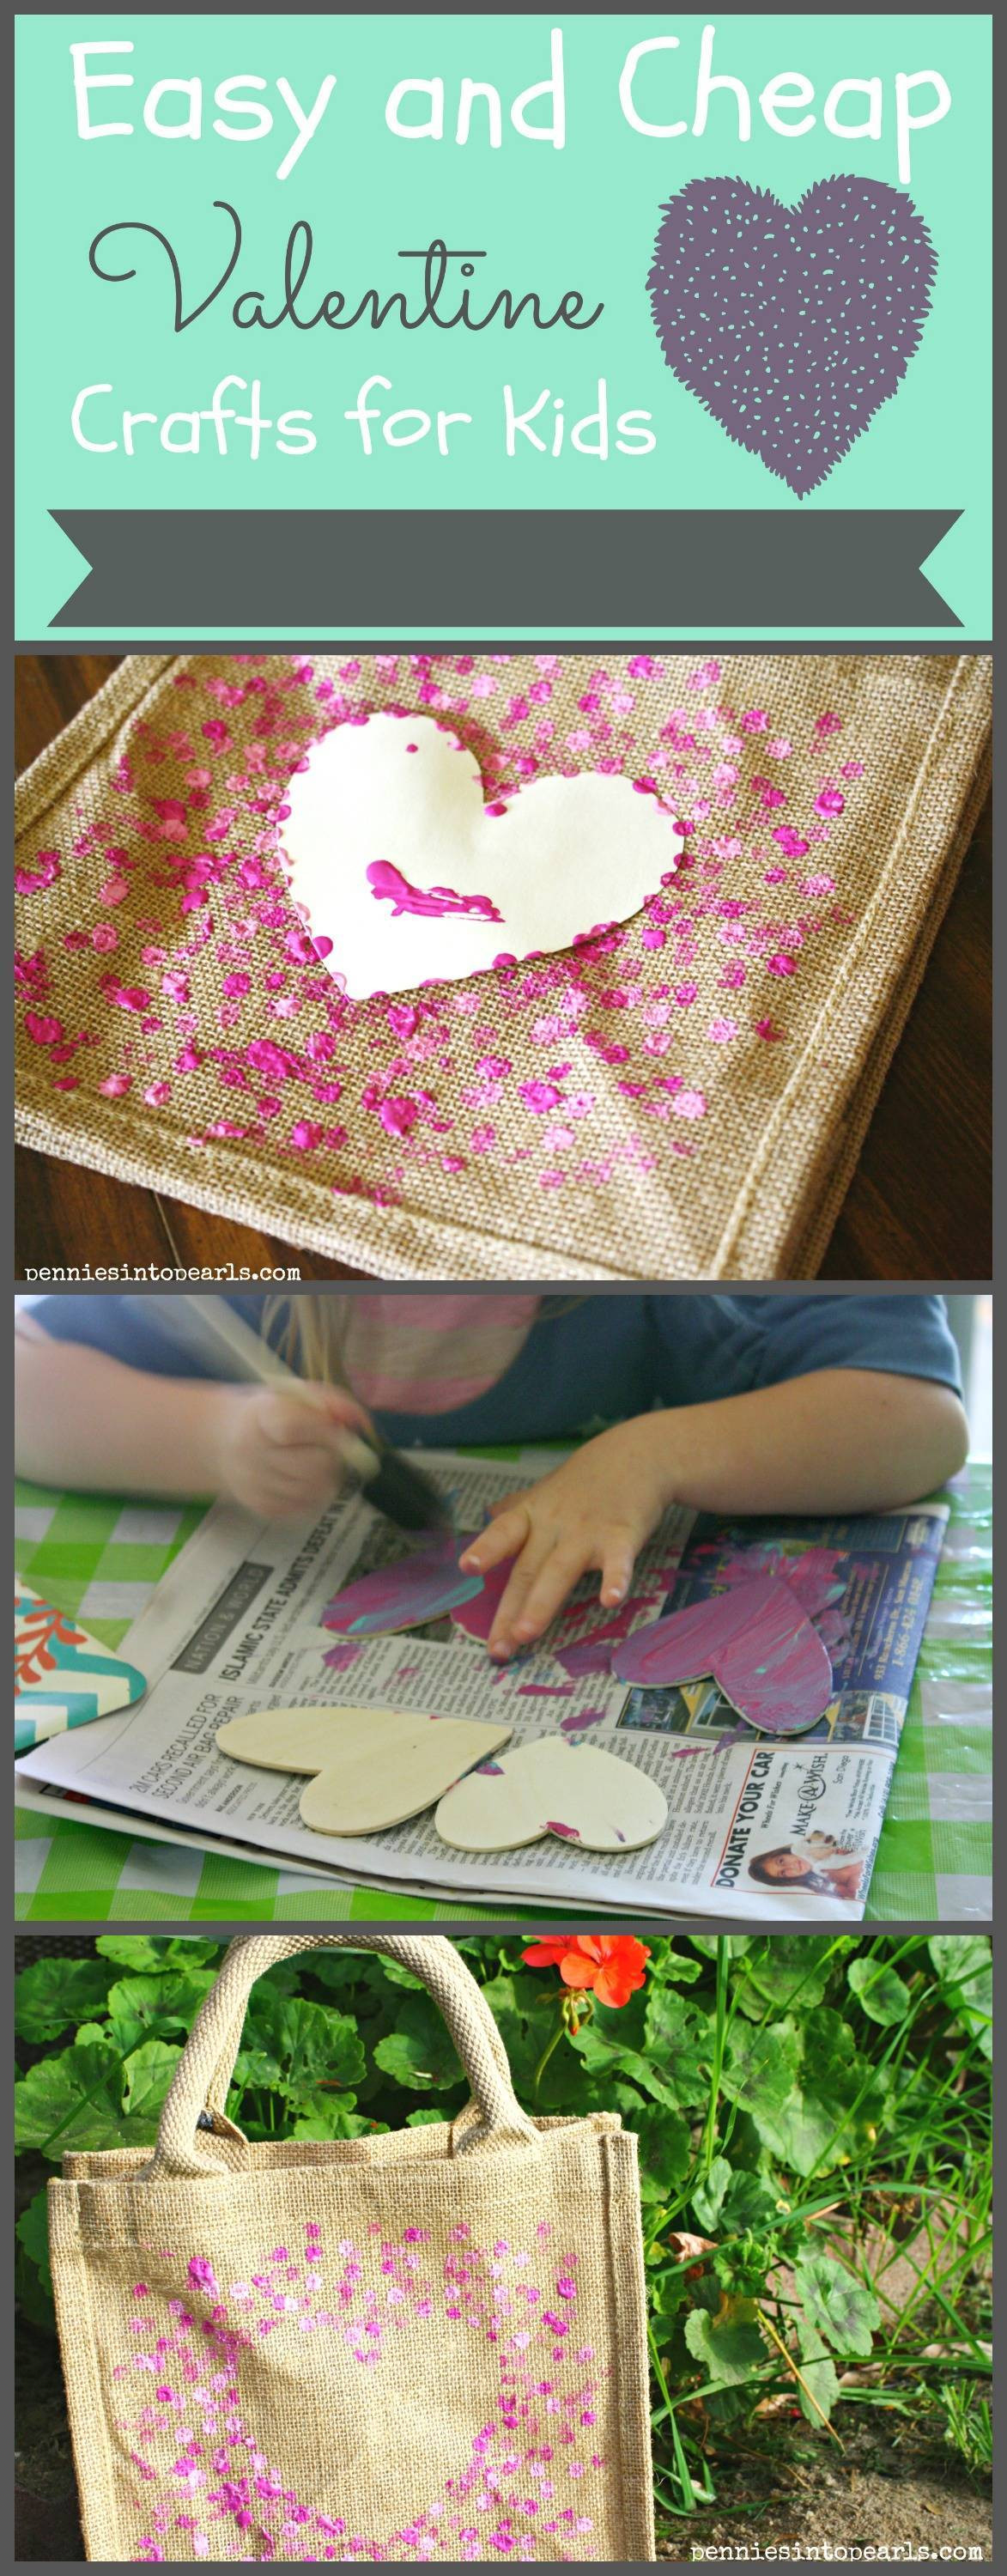 Best ideas about Easy Cheap Crafts For Kids . Save or Pin Easy and Cheap Kids Valentine Crafts Pennies into Pearls Now.